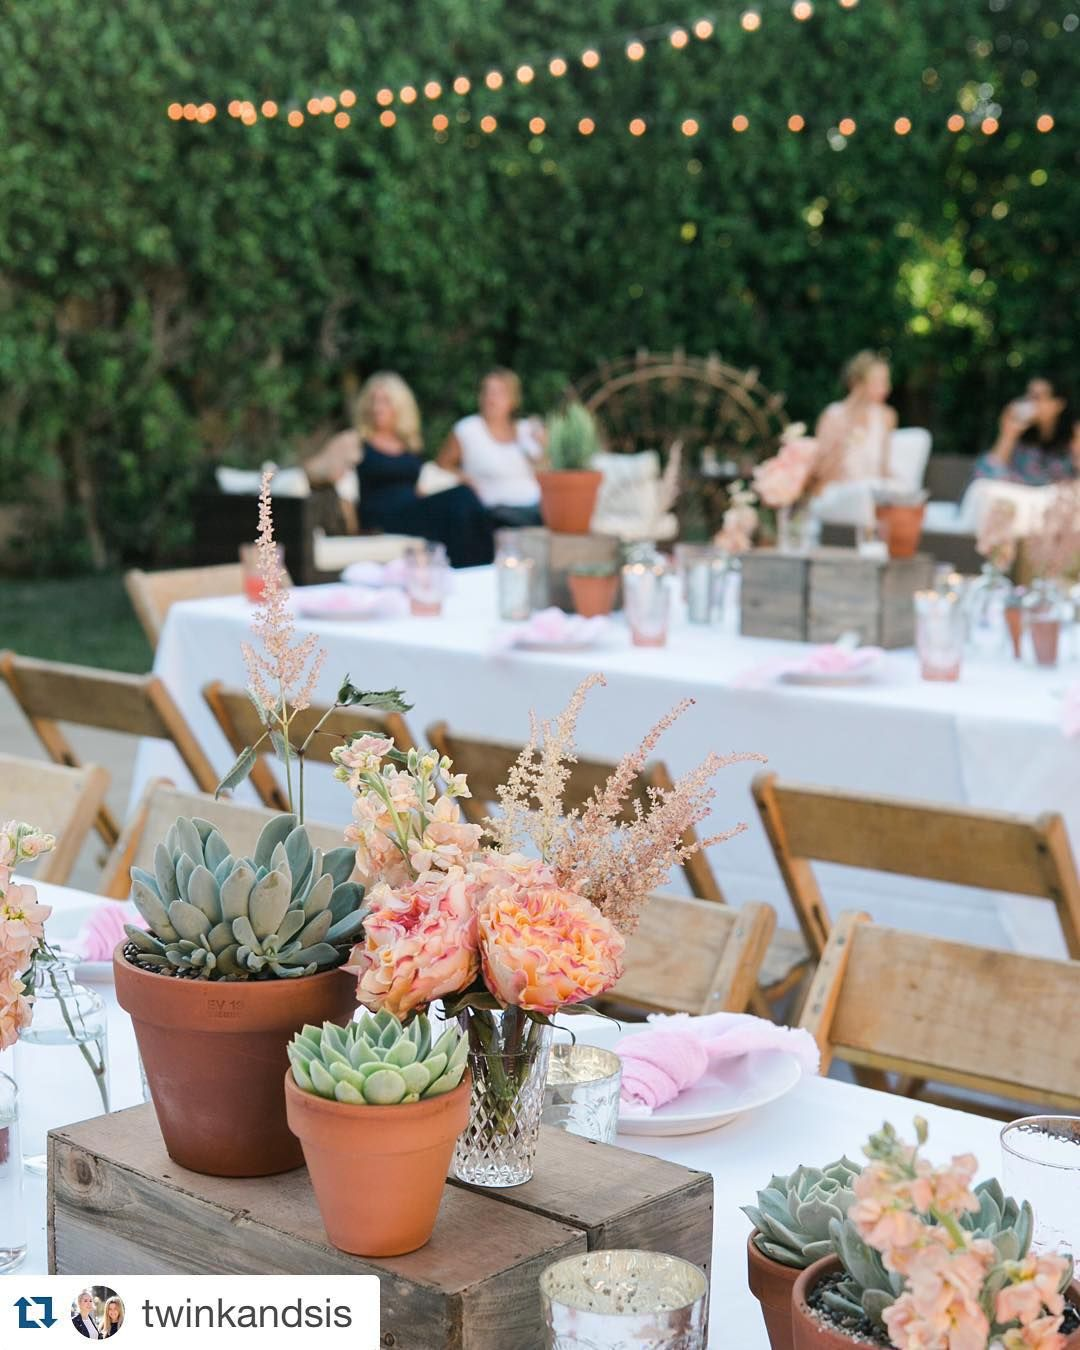 Garden event decor  Thank you to twinkandsis for this feature in this gorgeous event